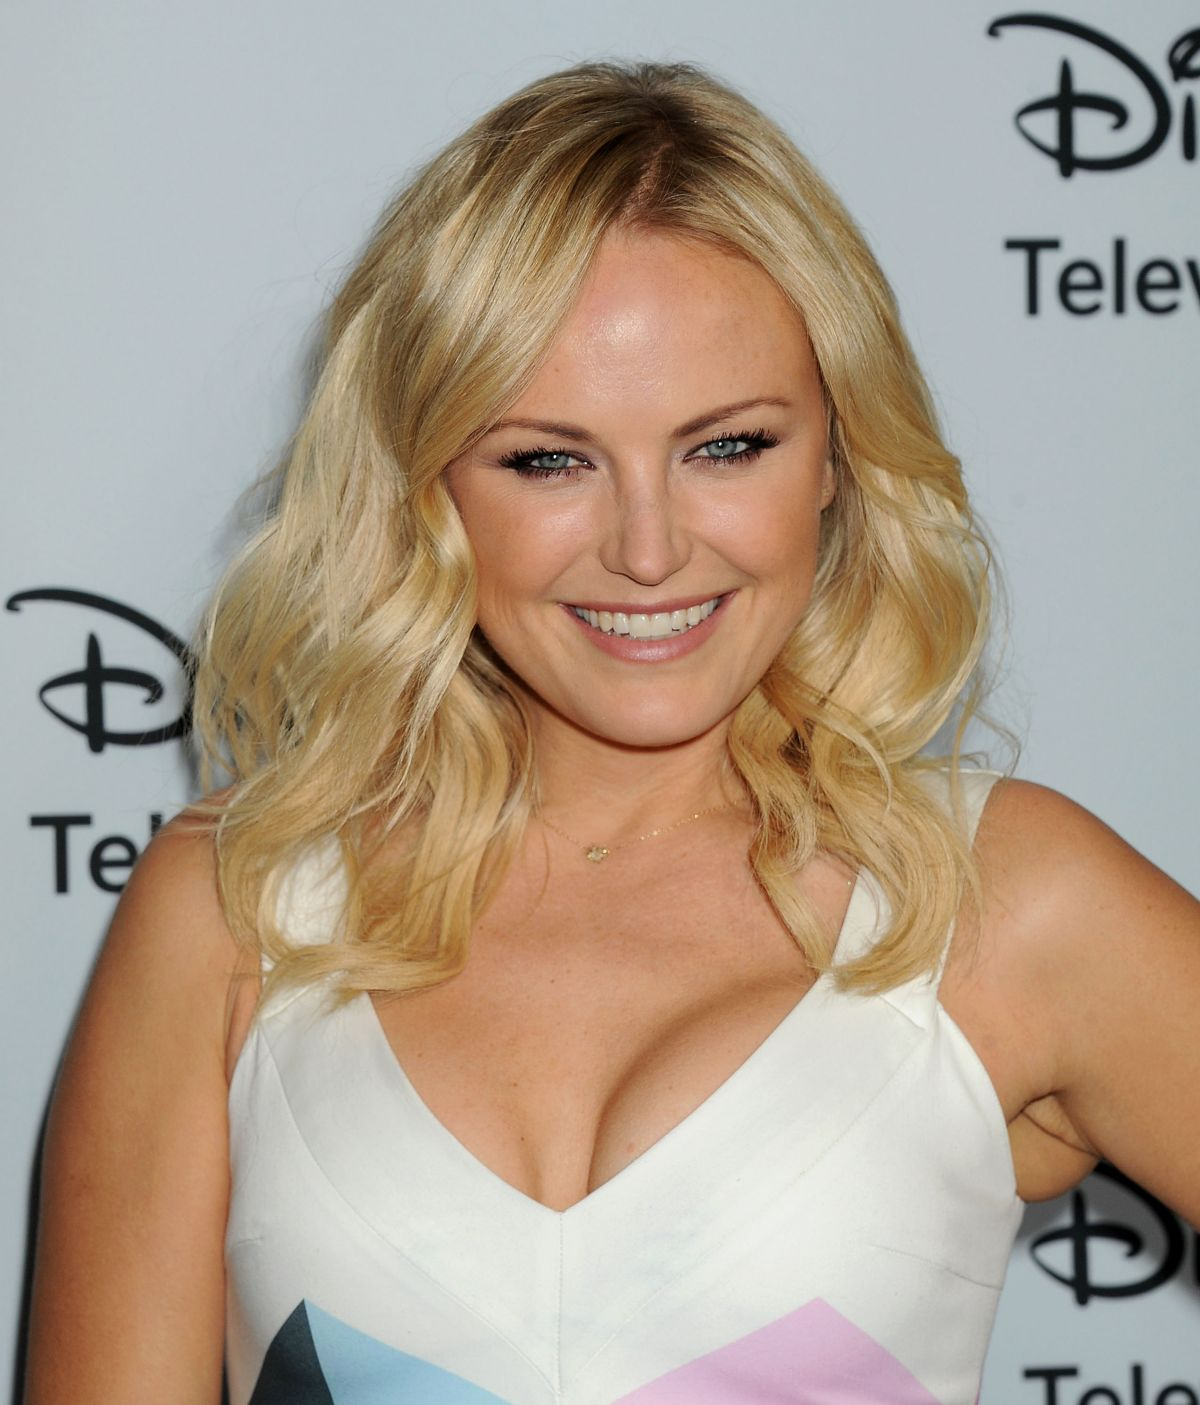 Pictures Malin Akerman nude (53 photo), Ass, Bikini, Twitter, braless 2019